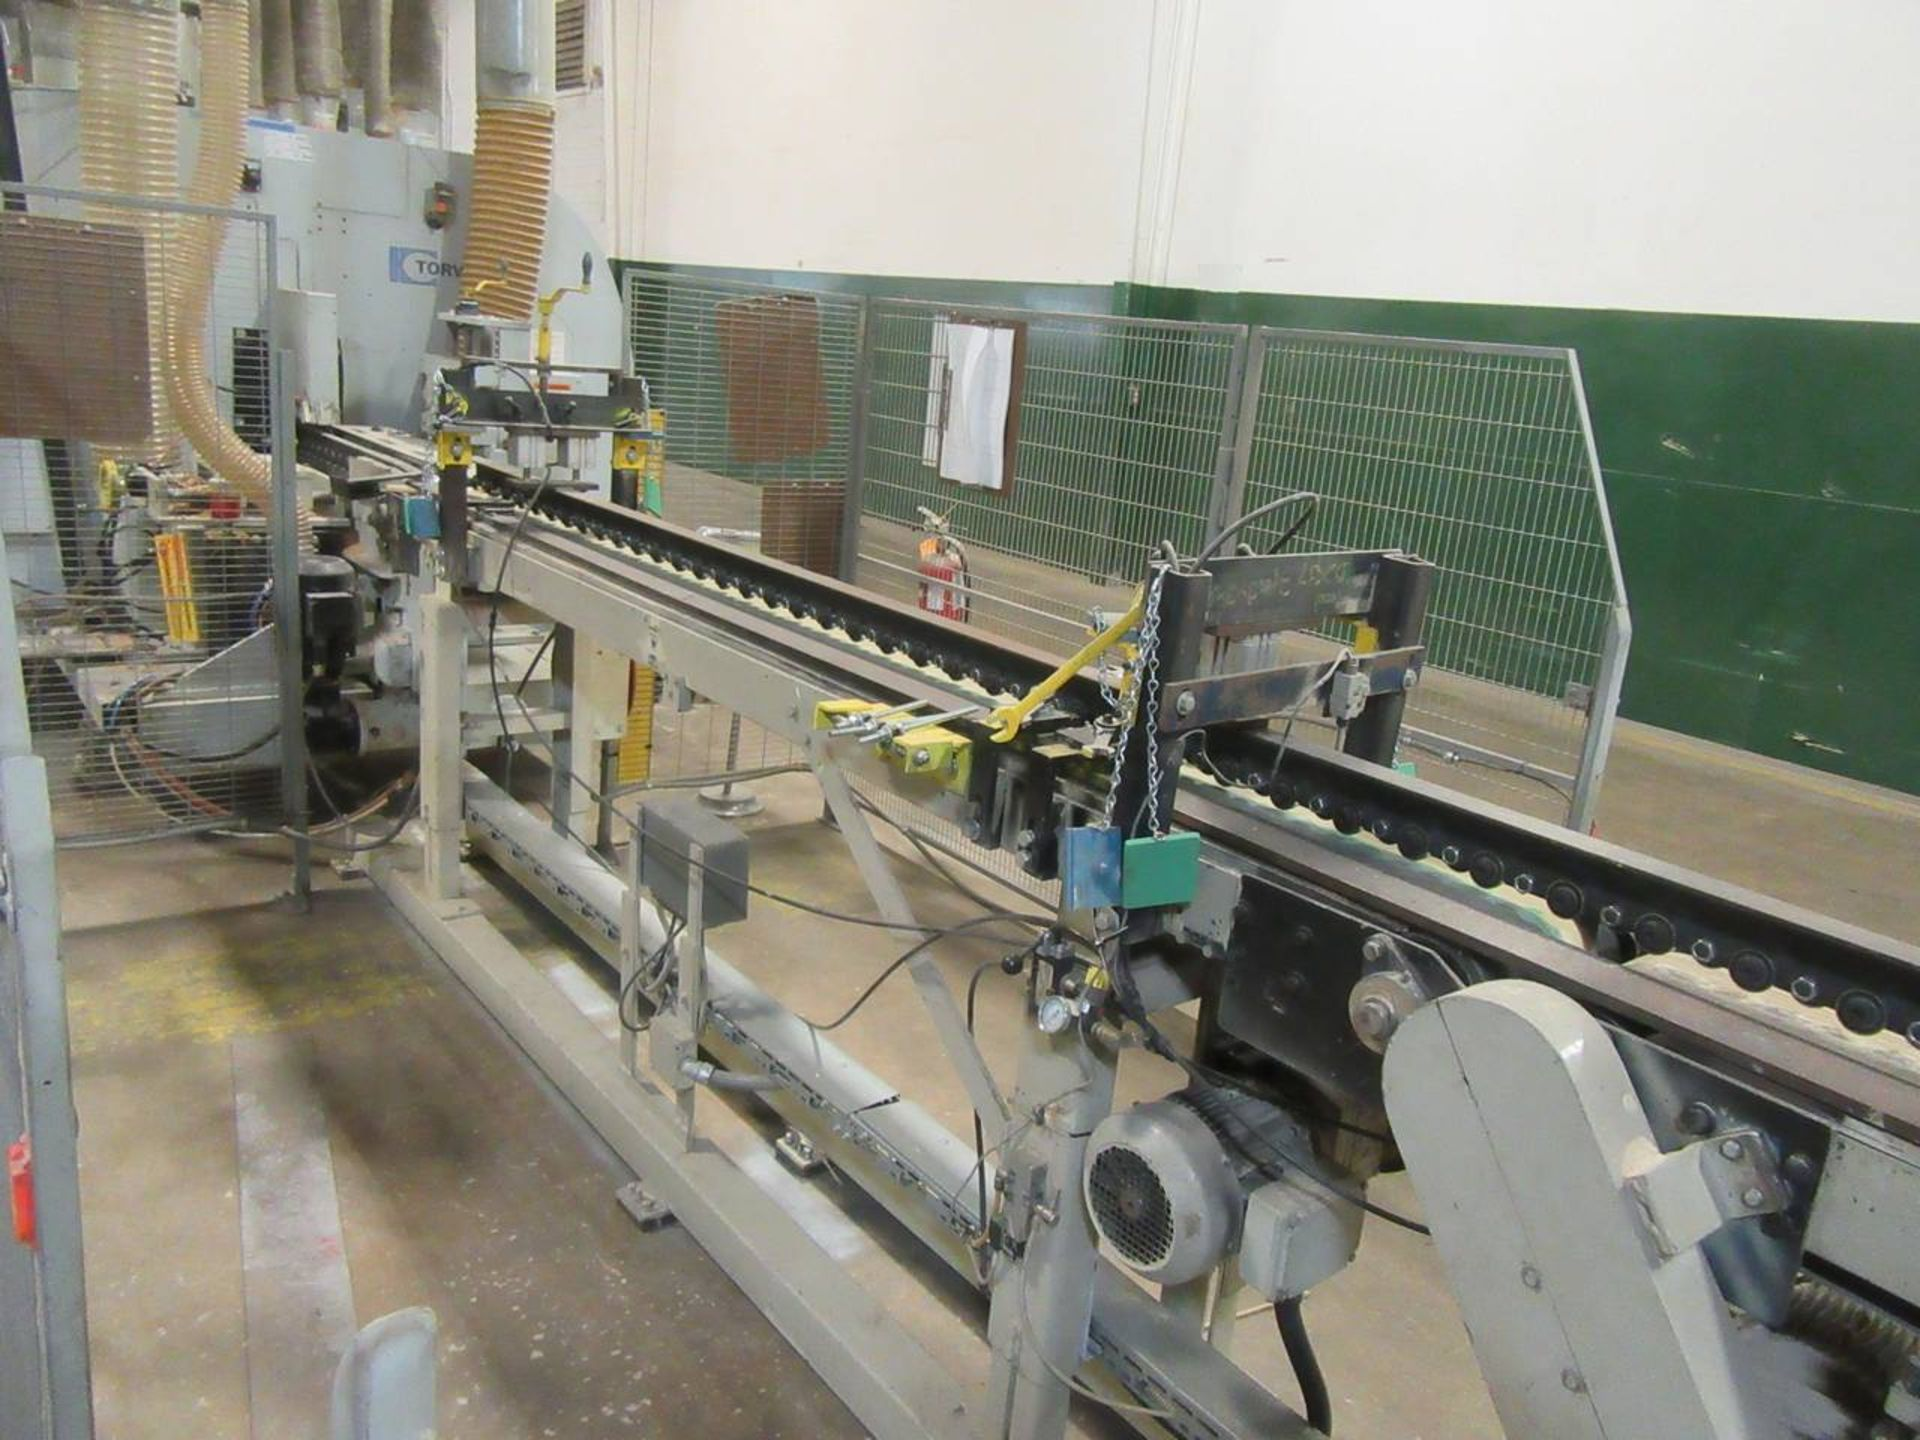 Lot 13 - Torwegge Moulder